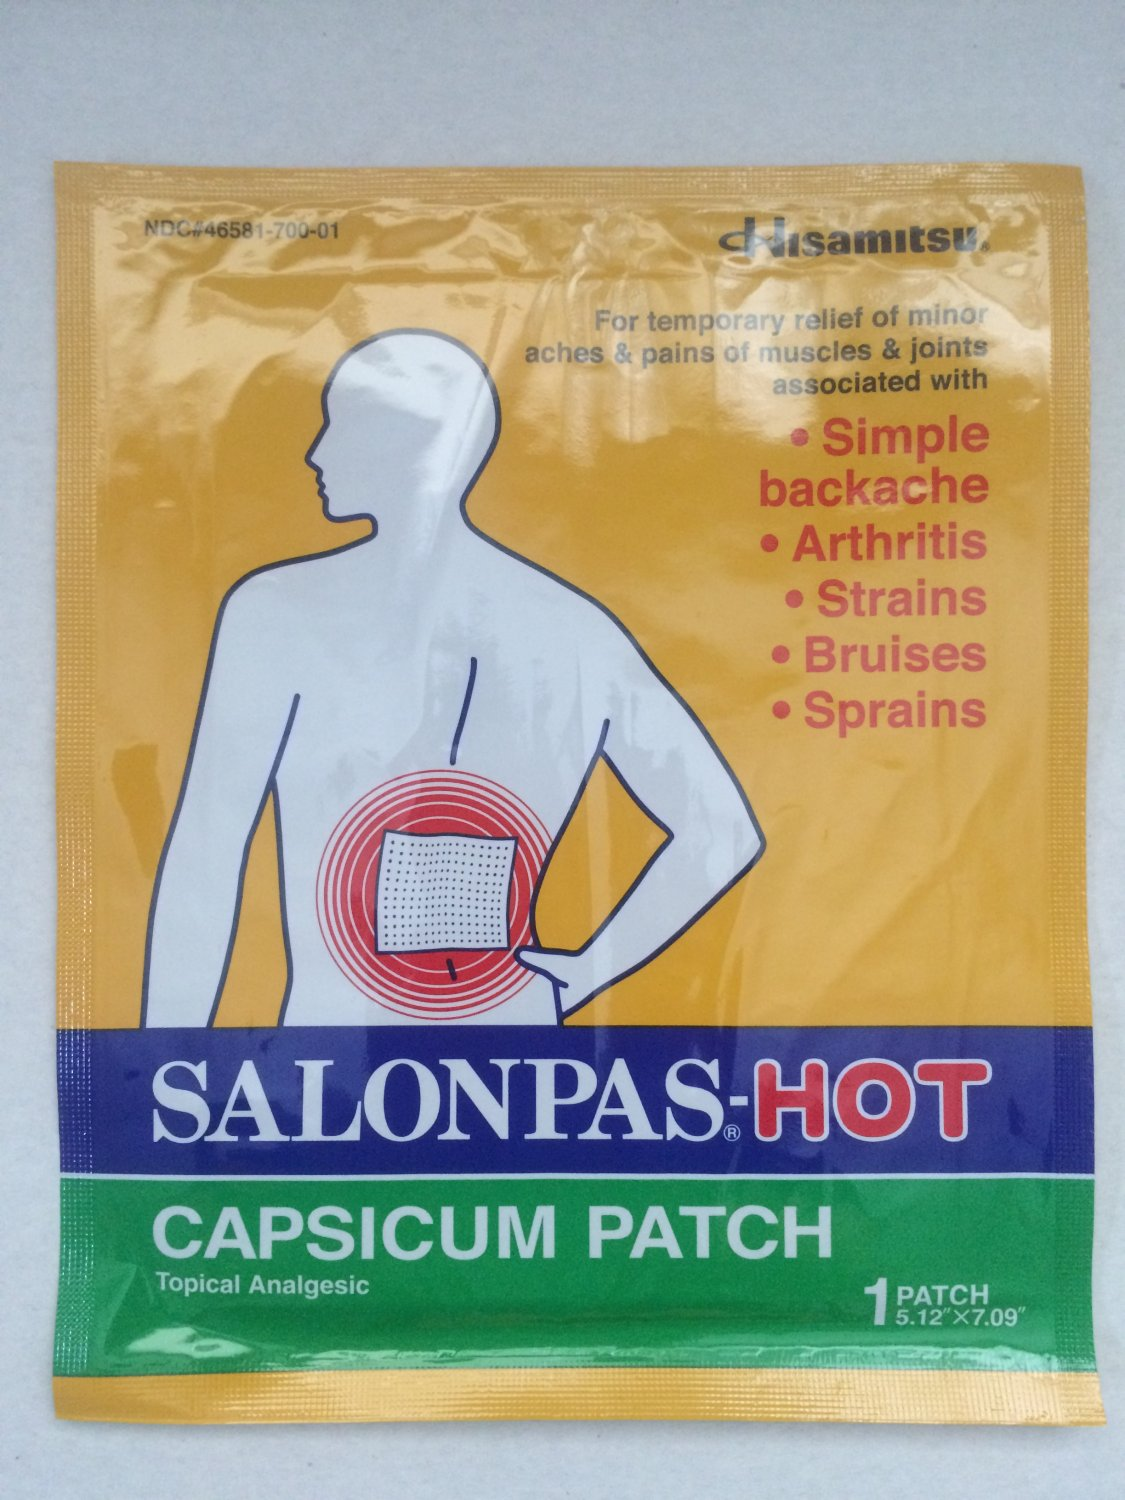 HISAMITSU Salonpas Hot Capsicum Patch, 50 Count